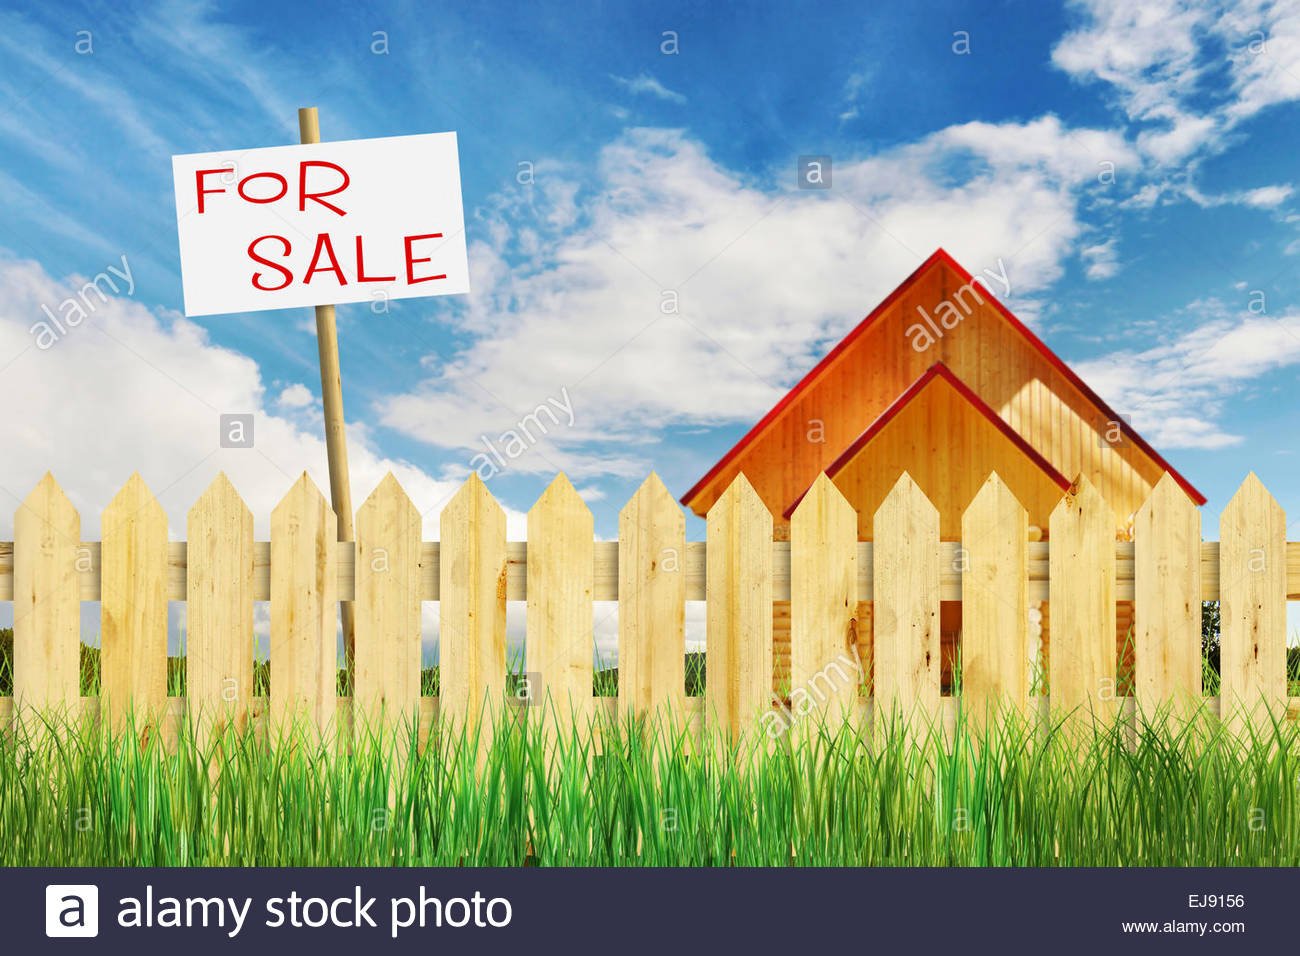 Realty stockfotos realty bilder alamy for Immobilien zum verkauf